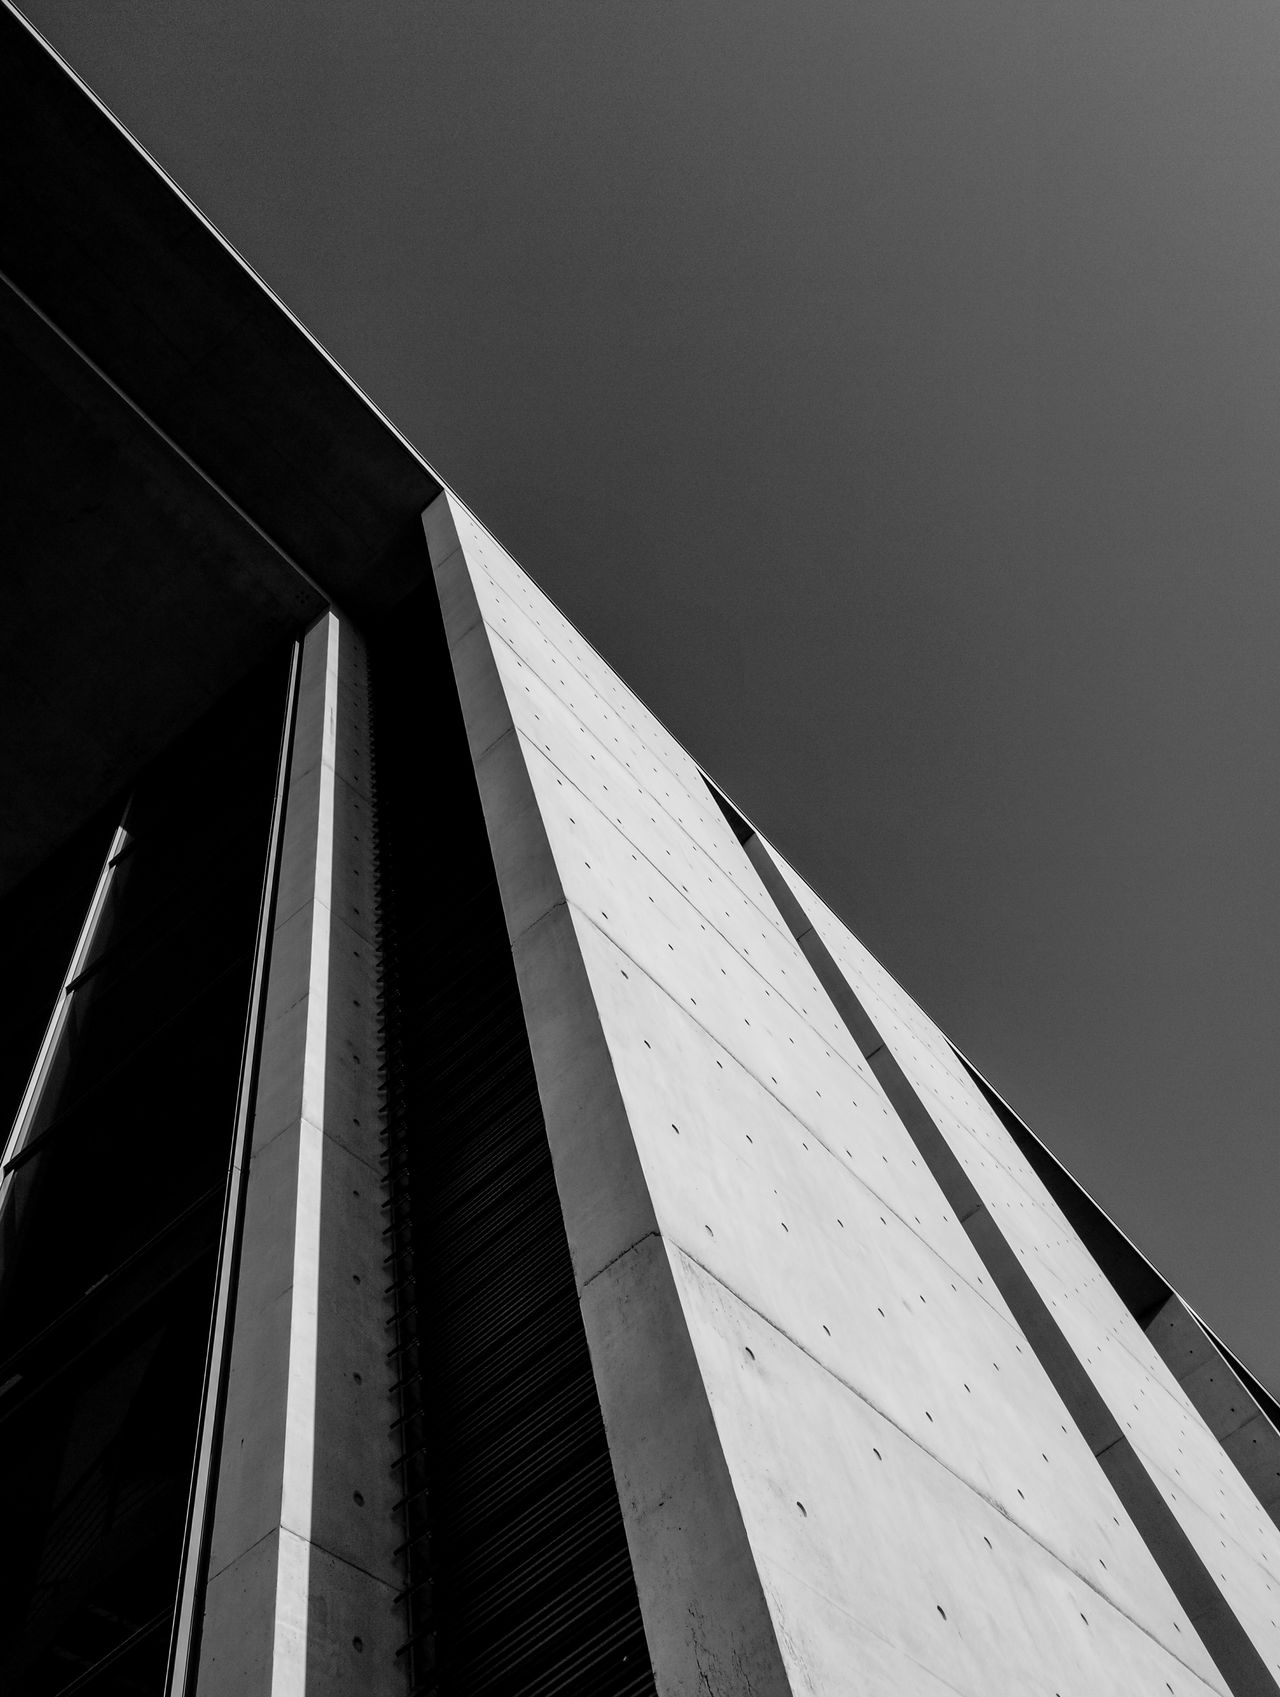 Blackandwhitearchitecture Architectural Detail Architecture Architecture_bw Architecture_collection Berlin Berlin Black & White Berlin Monochrome Berlin Photography Berlin Schwarzweiss Berliner Ansichten Black And White Berlin Blackandwhite Photography Building Exterior Built Structure Huawei Monochrome HuaweiP9 Lookingup Architecture Low Angle View Minimalism Minimalist Architecture Modern Monochrome Berlin No People Schwarzweiß